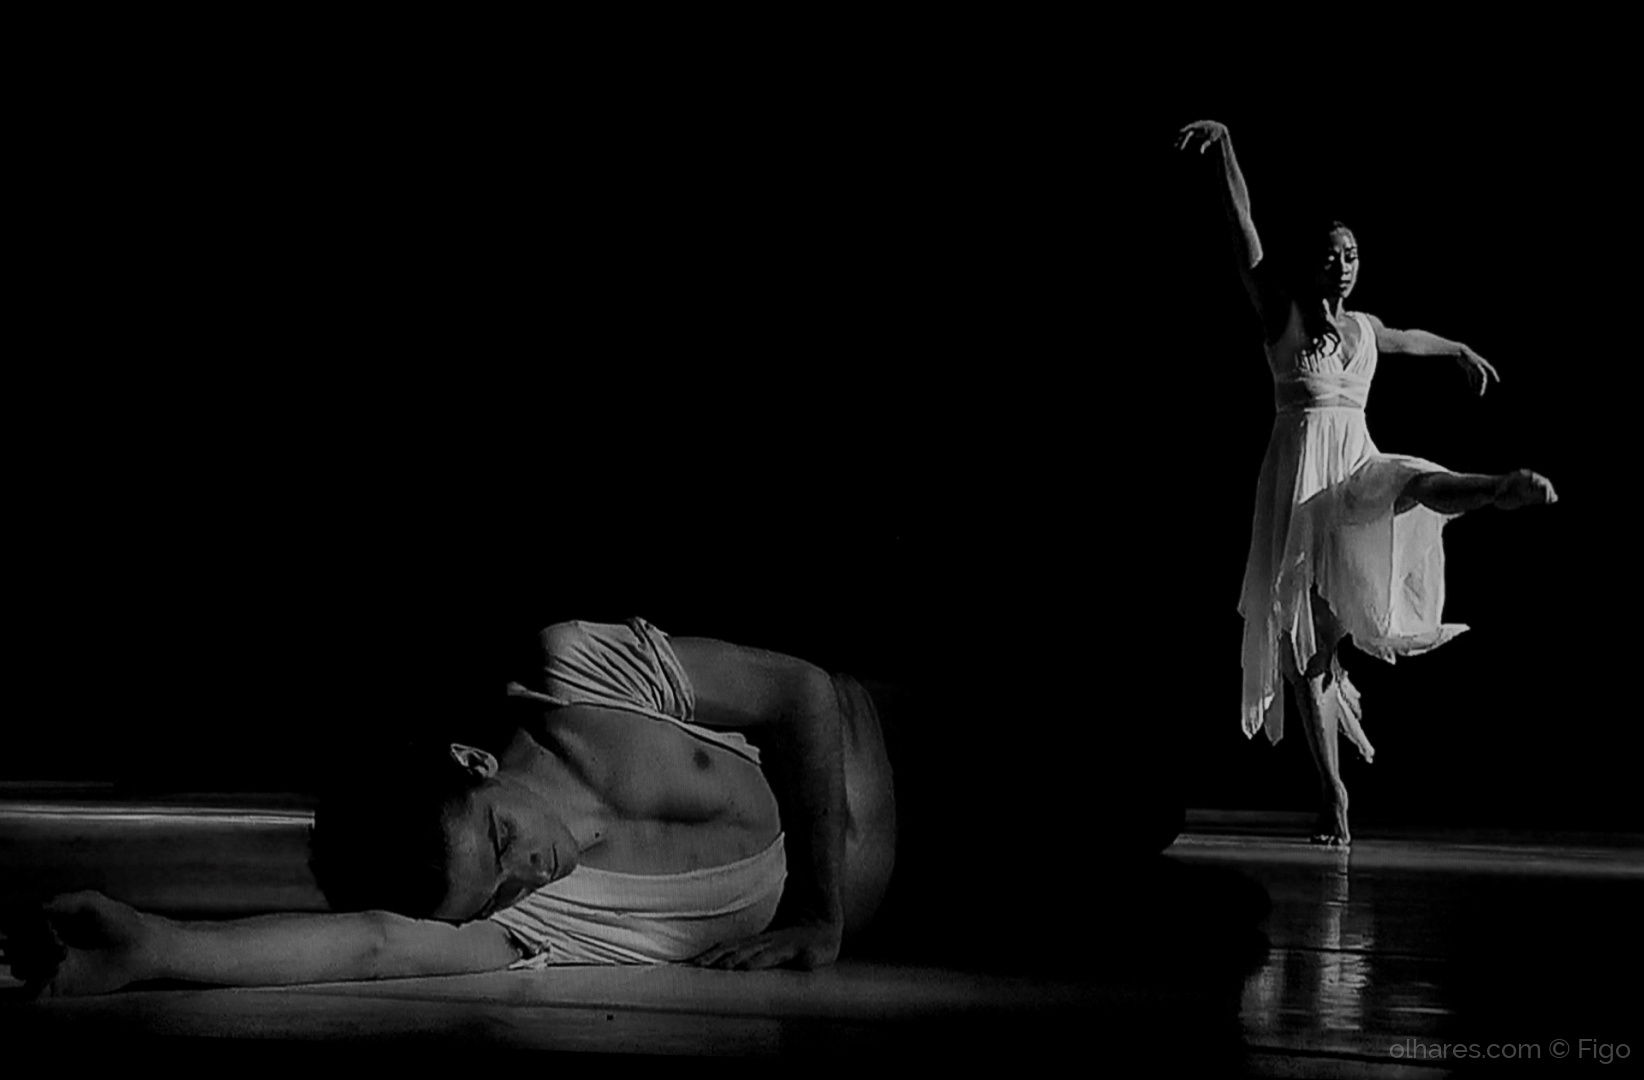 Gentes e Locais/In the charm of the dance